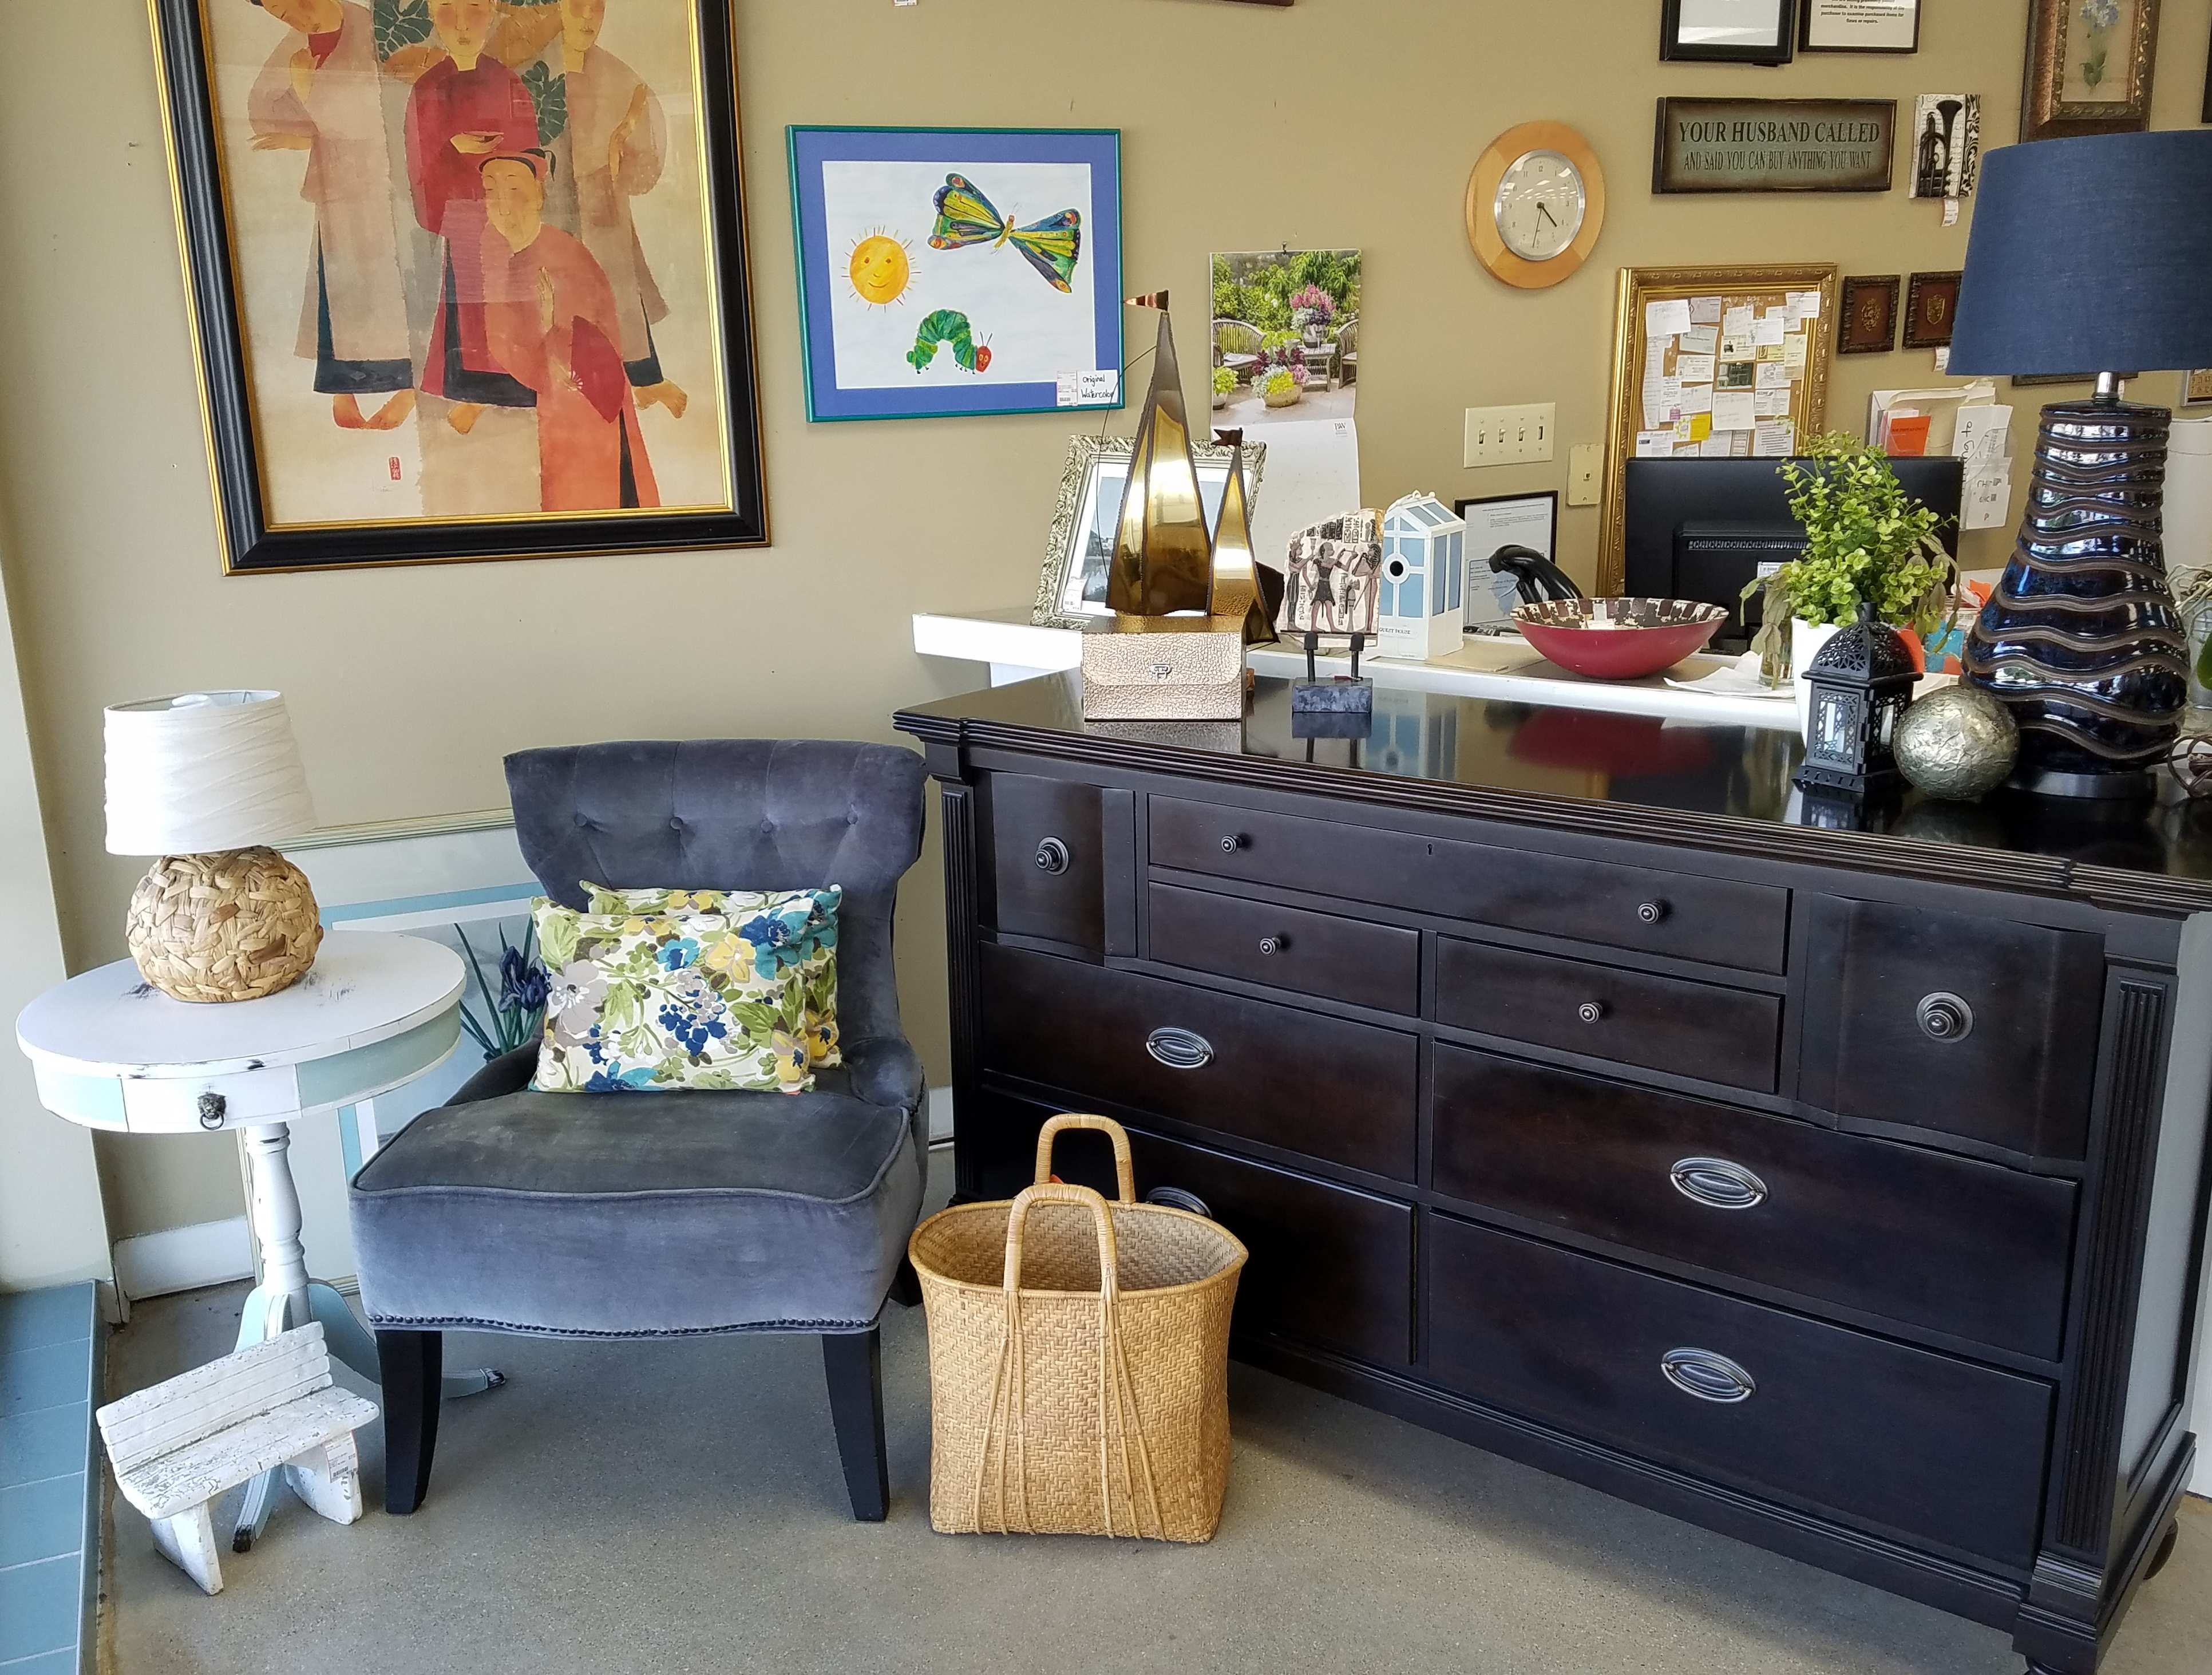 Solid wood dresser + decorative chair